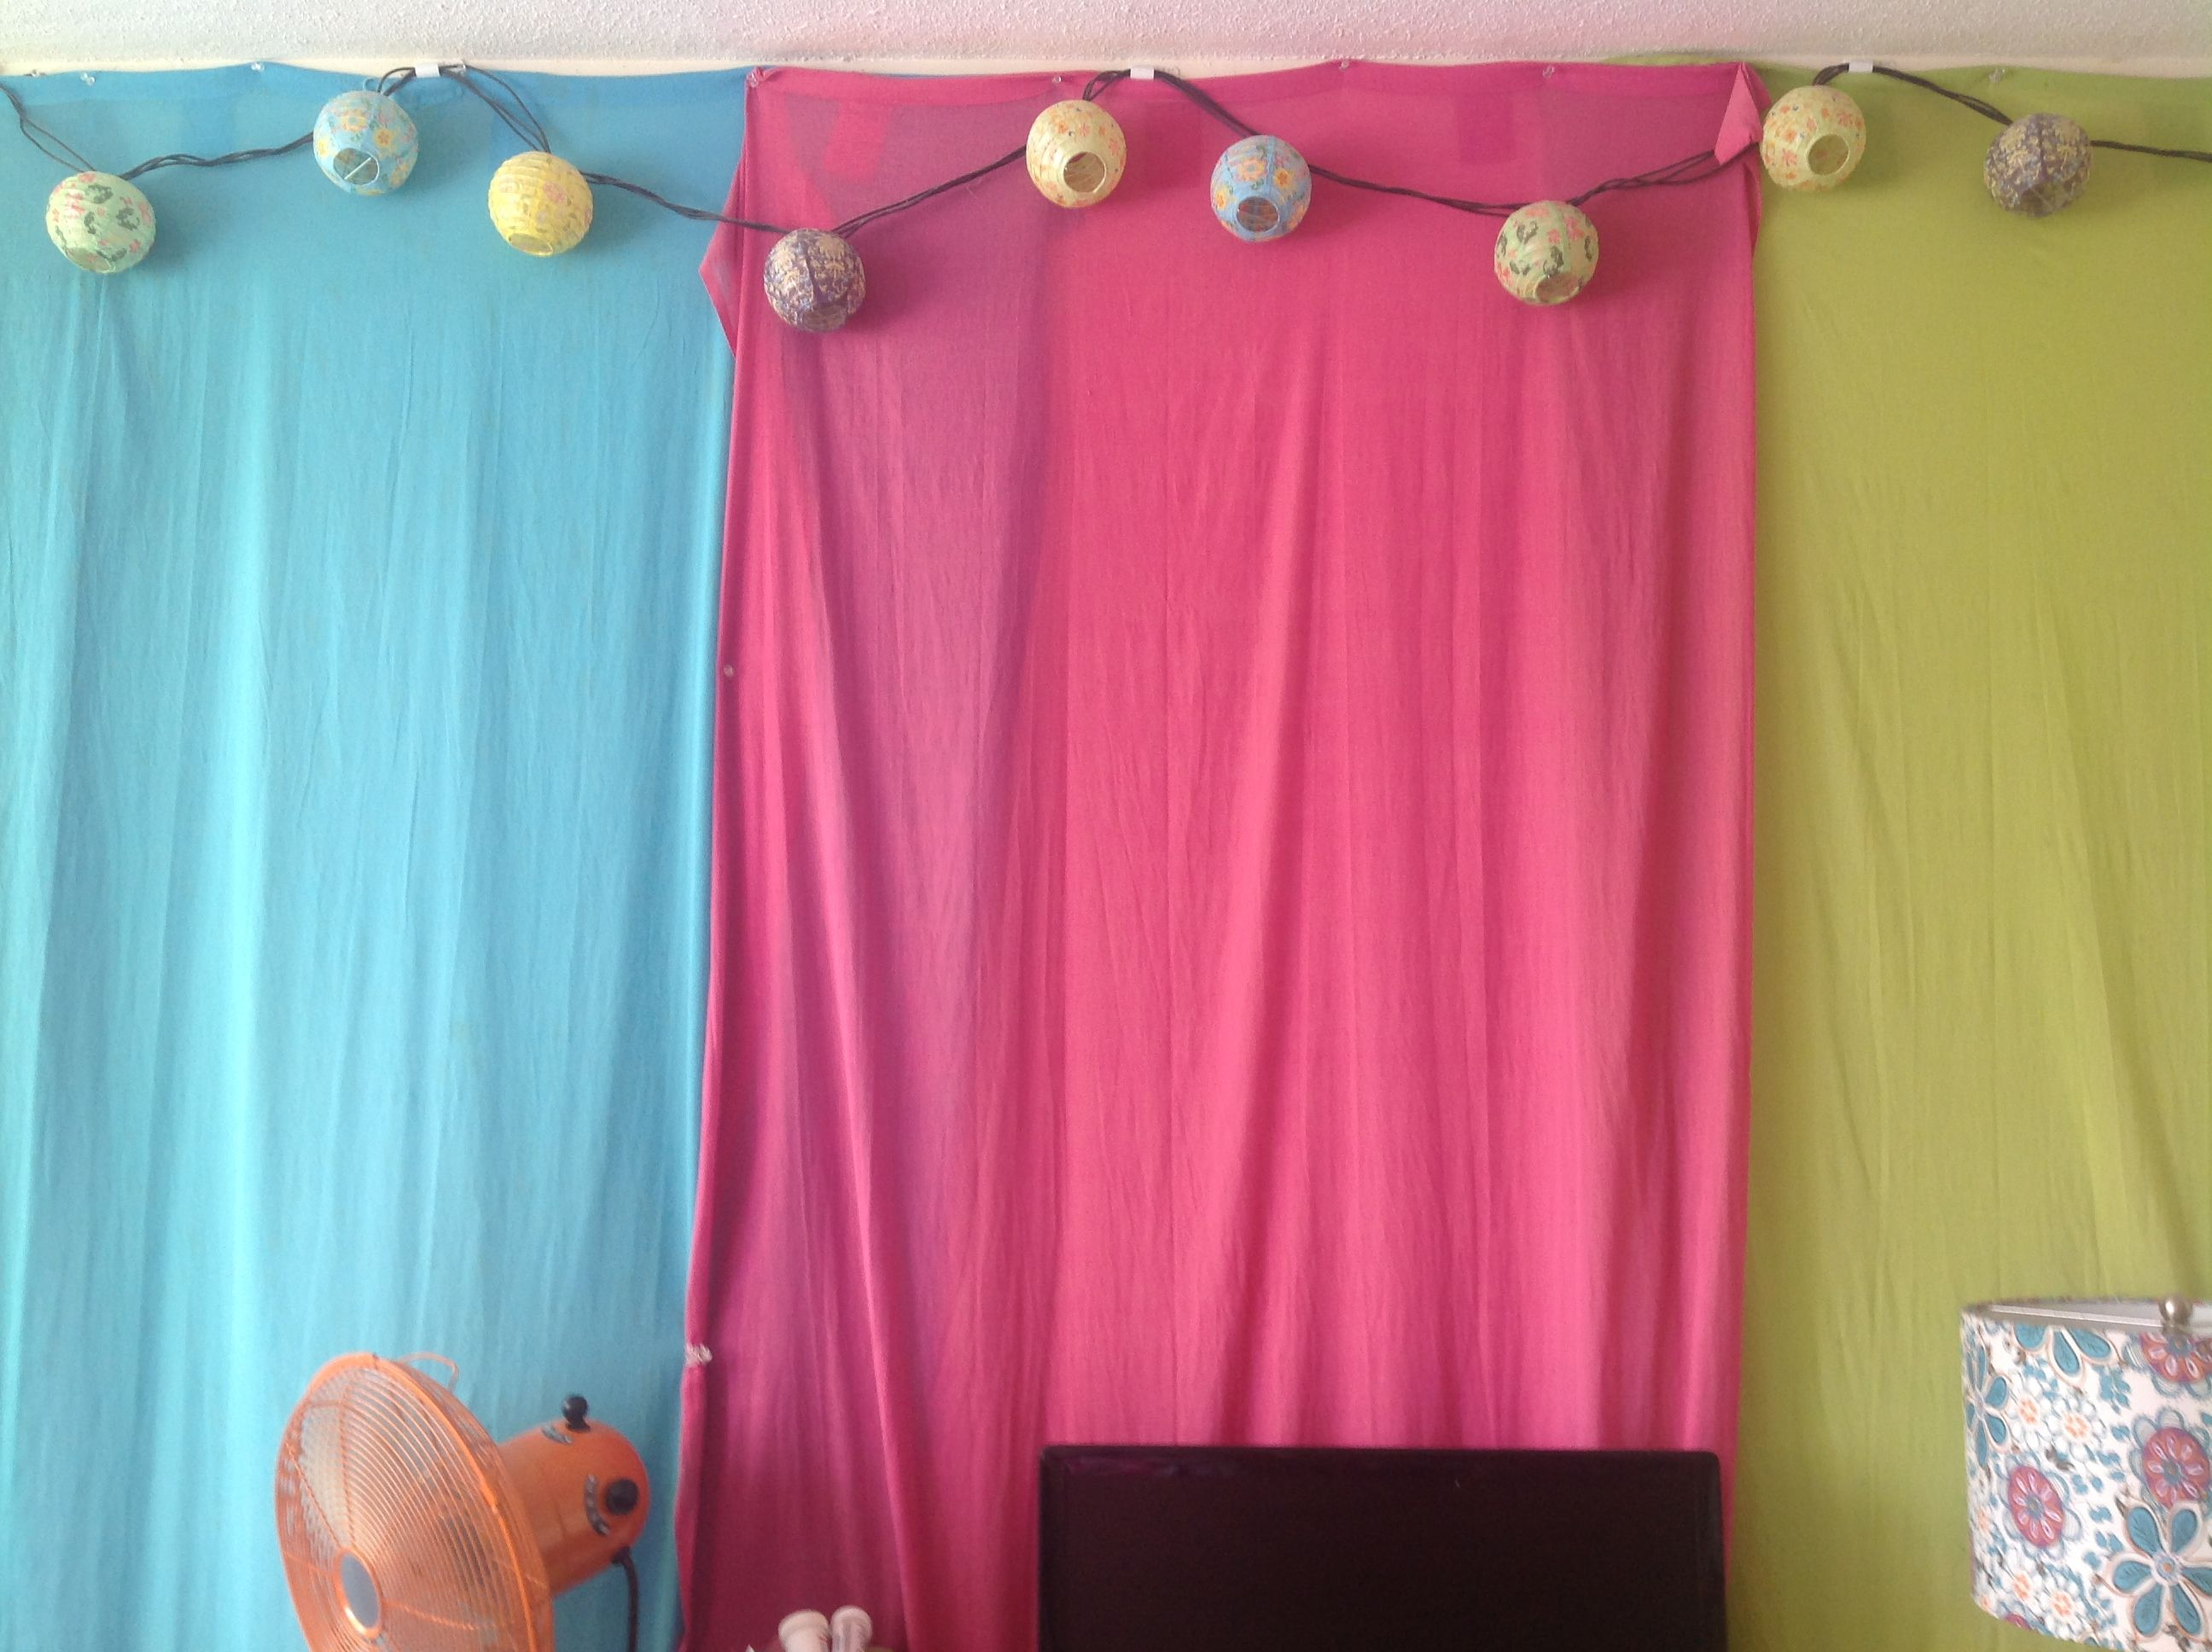 Hang Curtains On Walls If You Can T Paint Plus You Can Take Them Down To Wash Still 5 At Regular Department Stores Kid Room Decor Hanging Curtains Decor